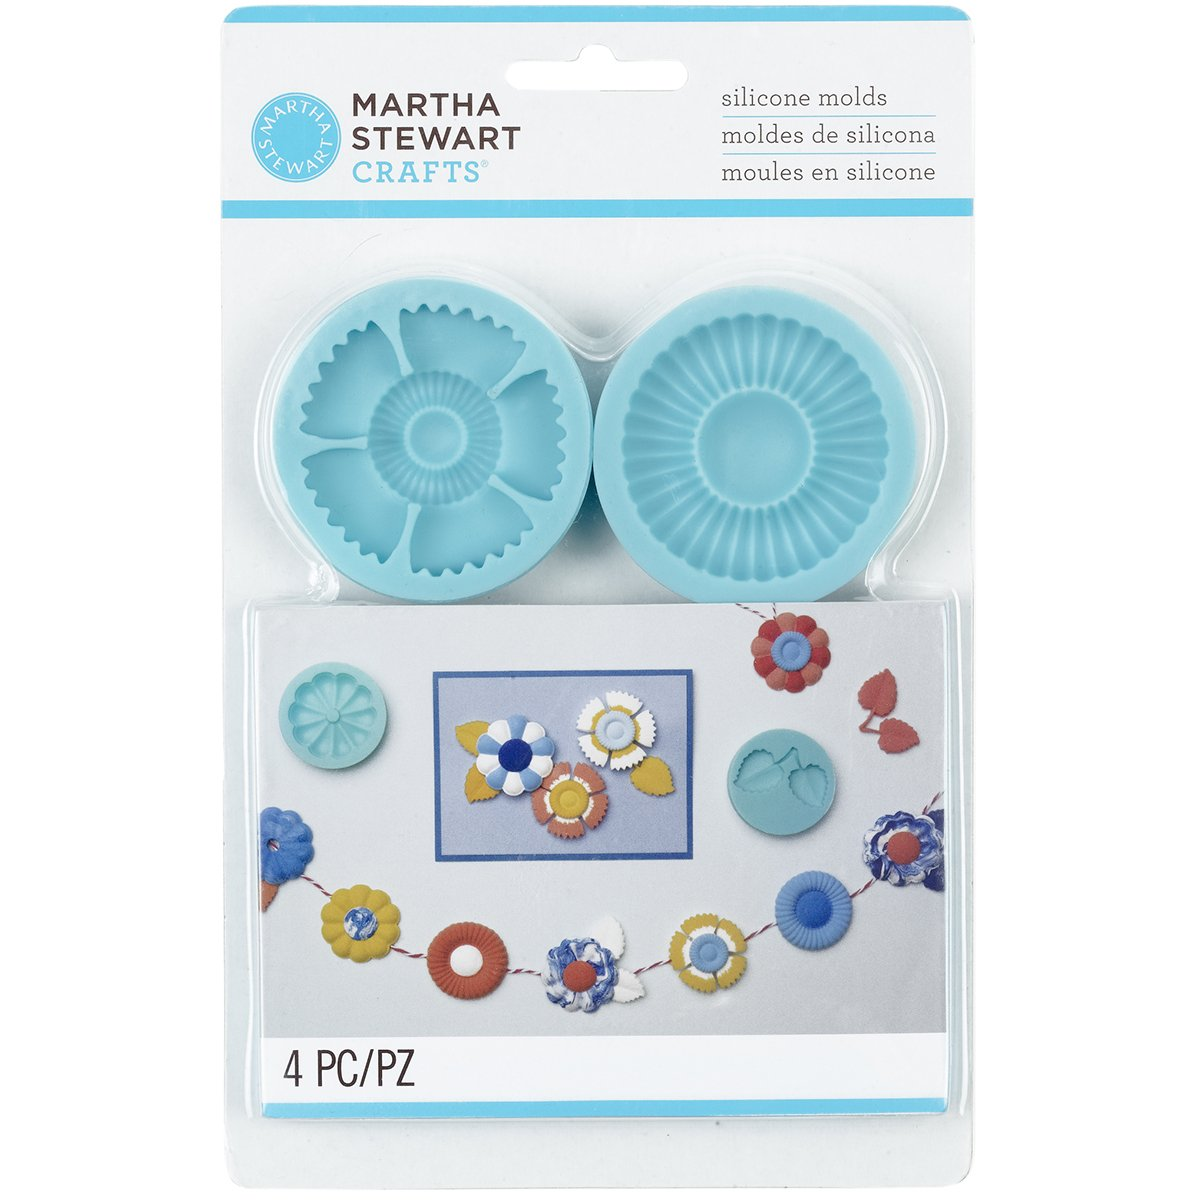 Martha Stewart Crafts Silicone Mold, Graceful Bloom product image